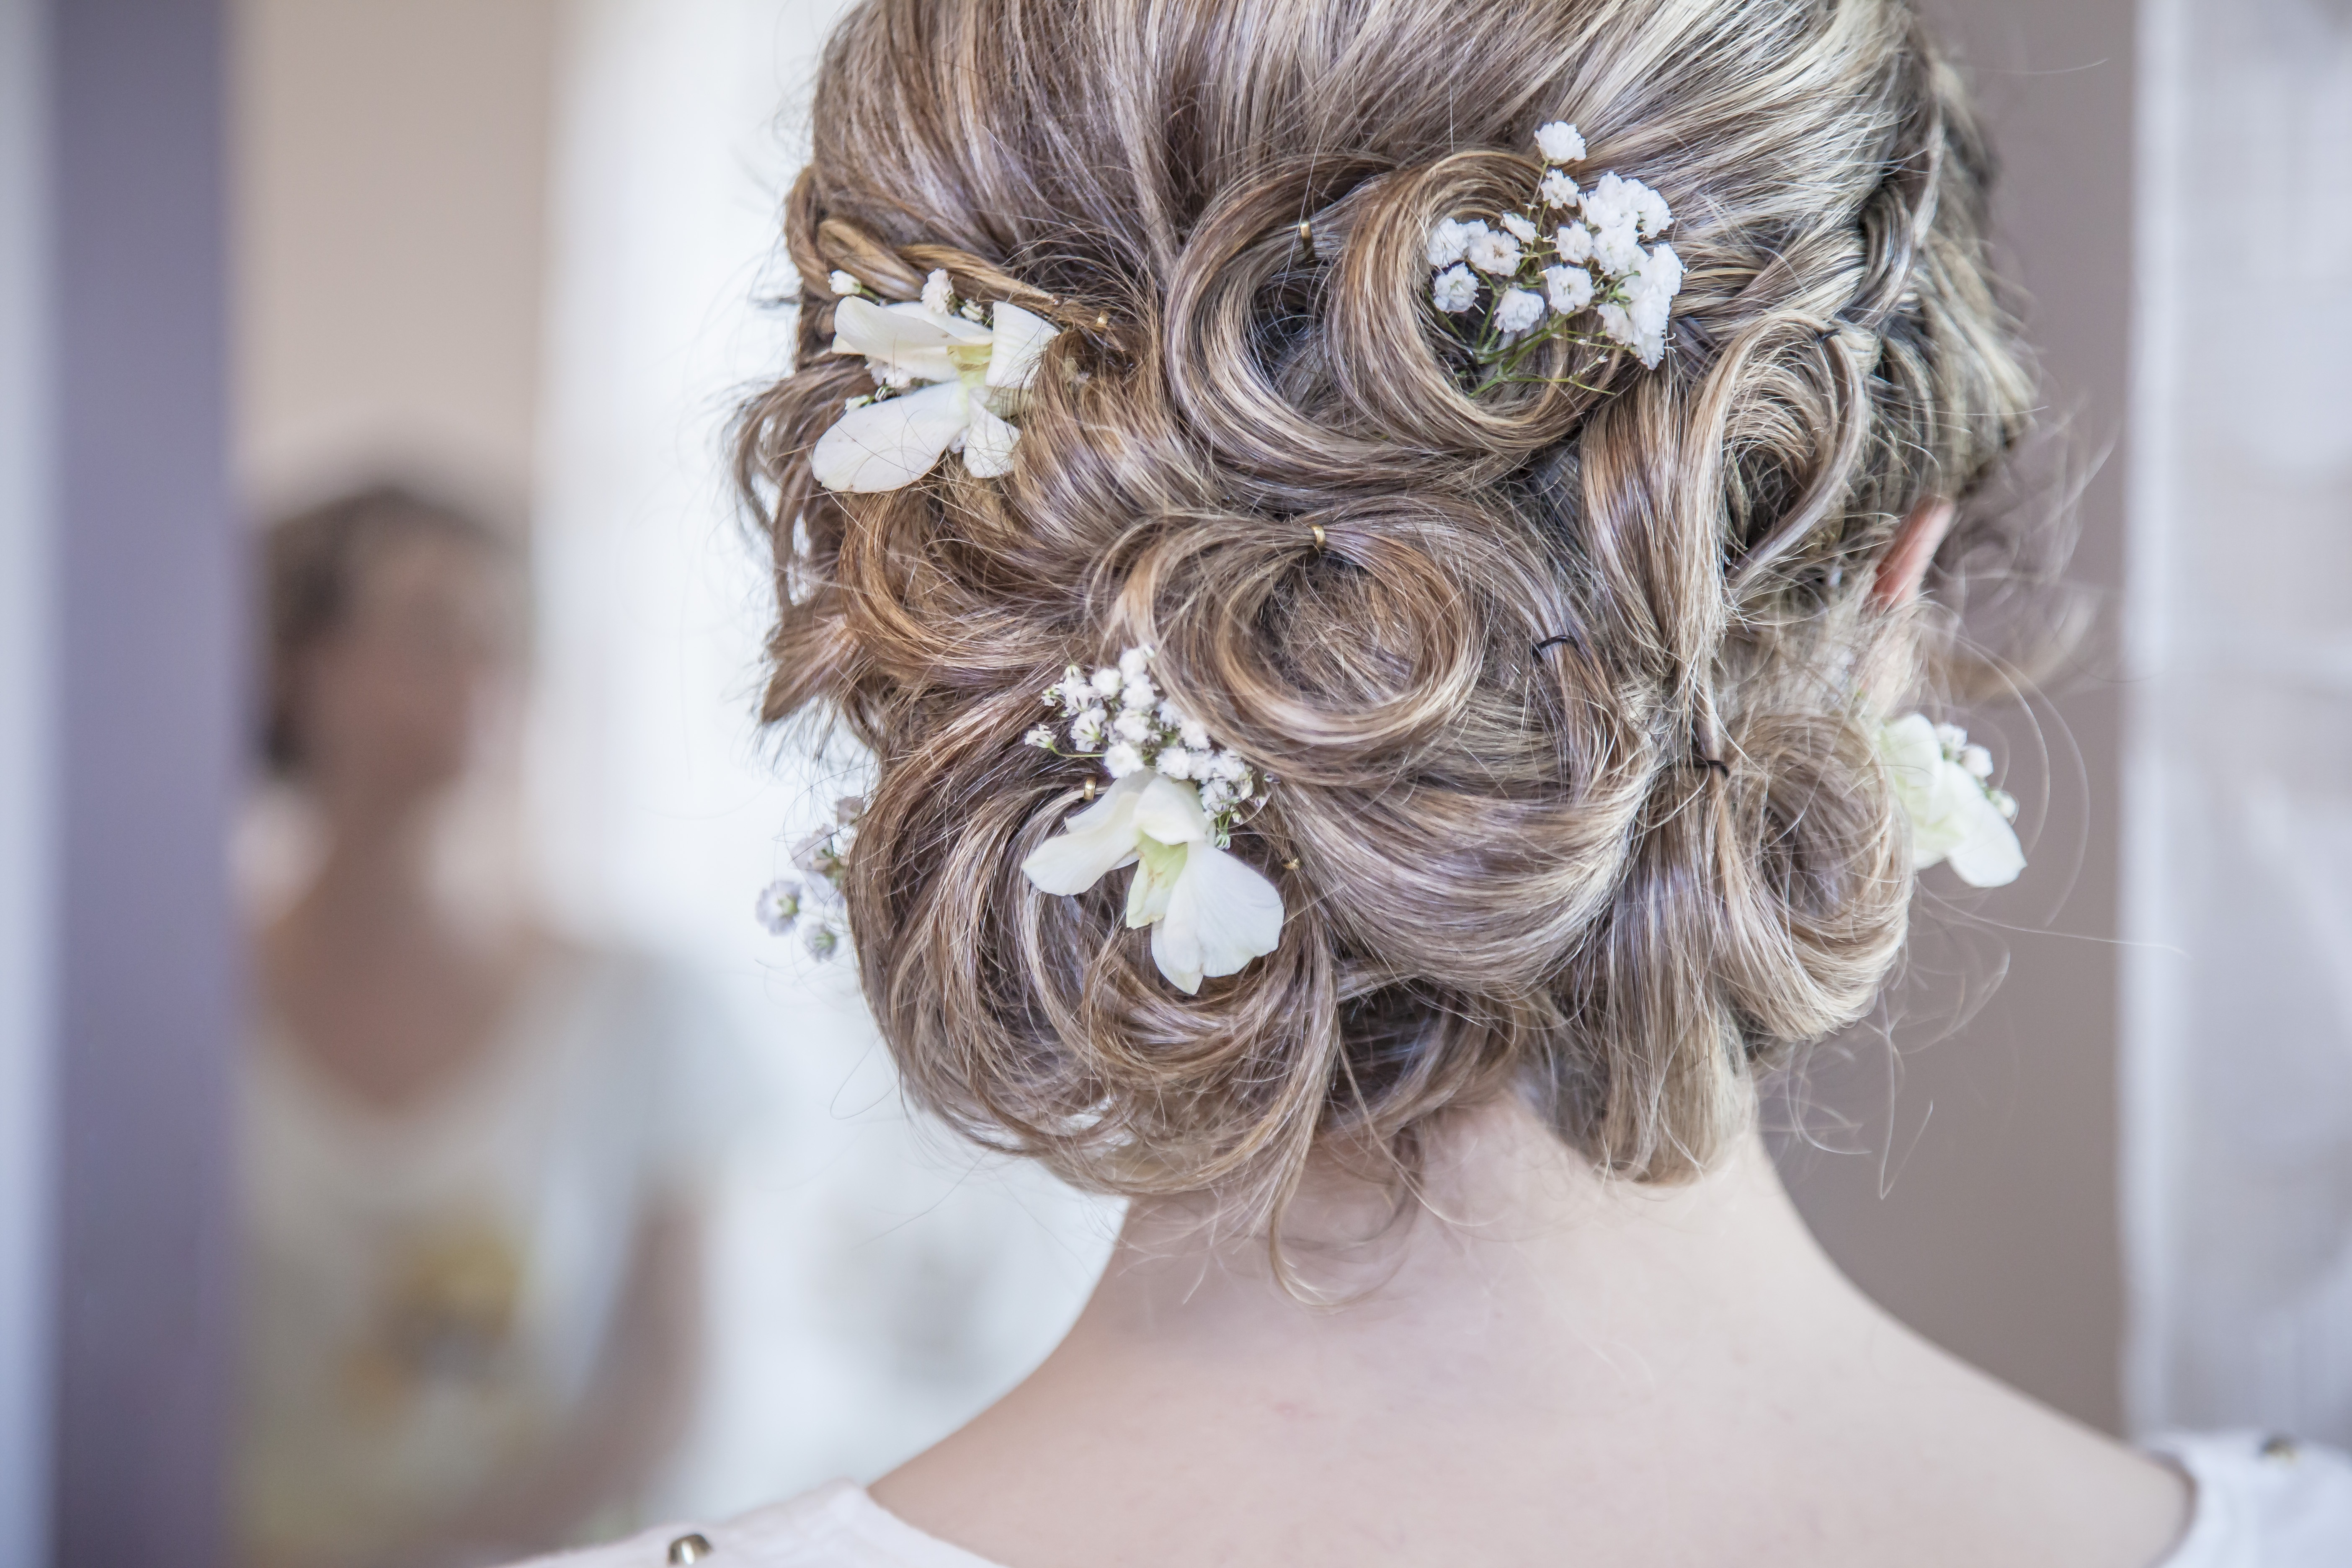 Coupe-cheveux-mariage-loire-chasse-givors-rhone-femme-salon-coiffure